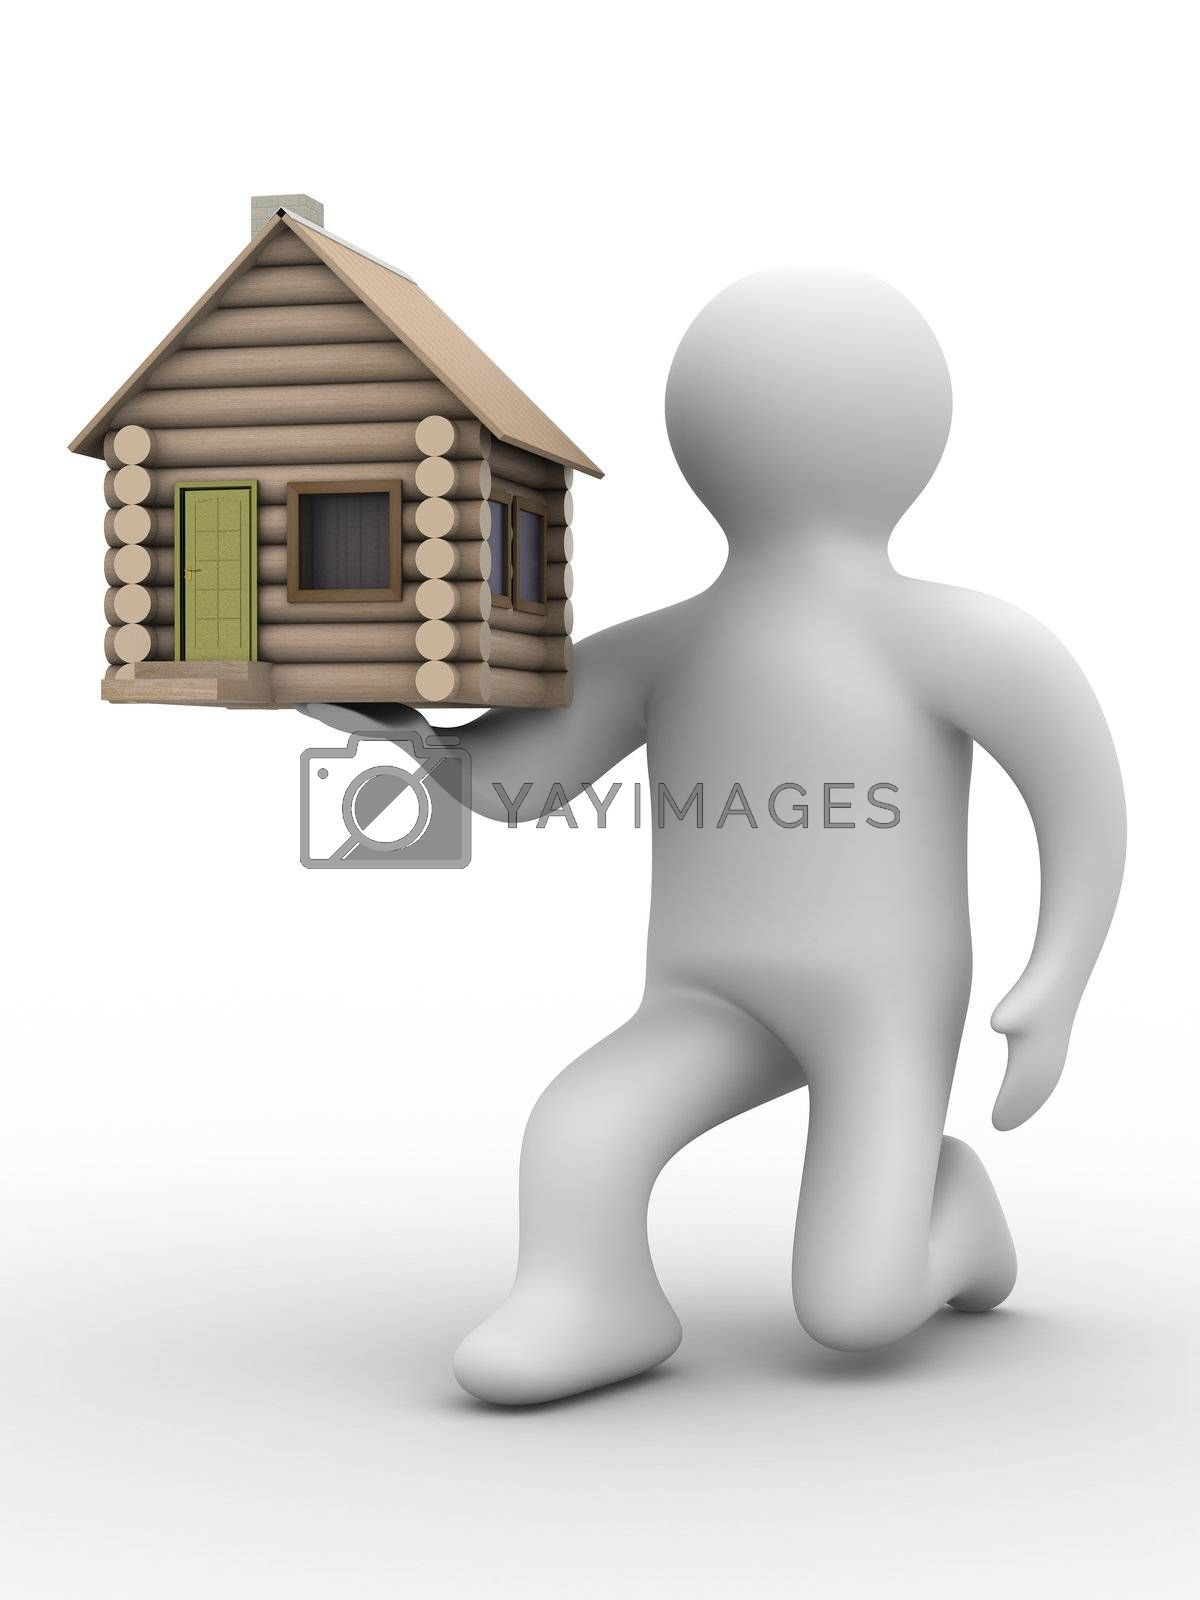 Royalty free image of house in a gift. 3D image. isolated illustrations by ISerg